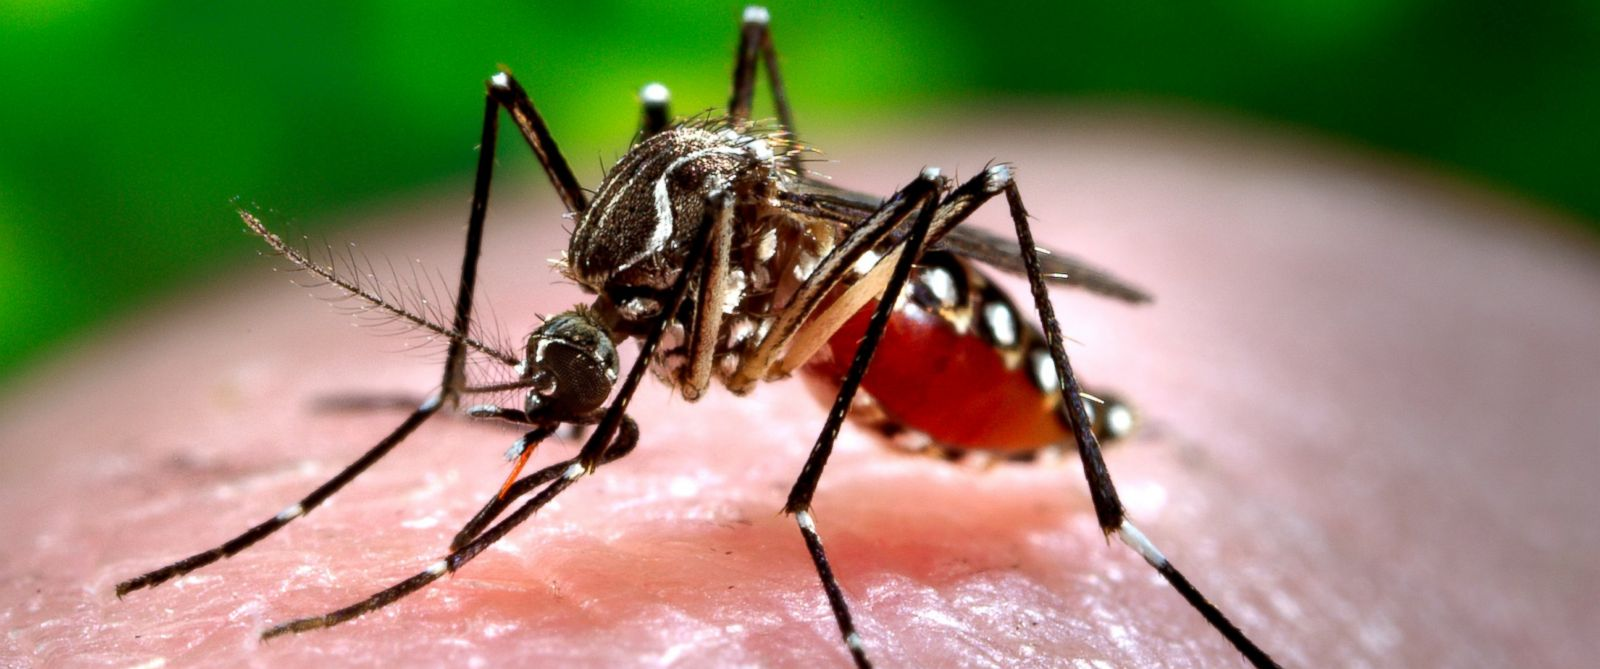 PHOTO: The Zika virus is spread through the Aedes species of mosquito and officials are confirmed it has caused birth defects in children.